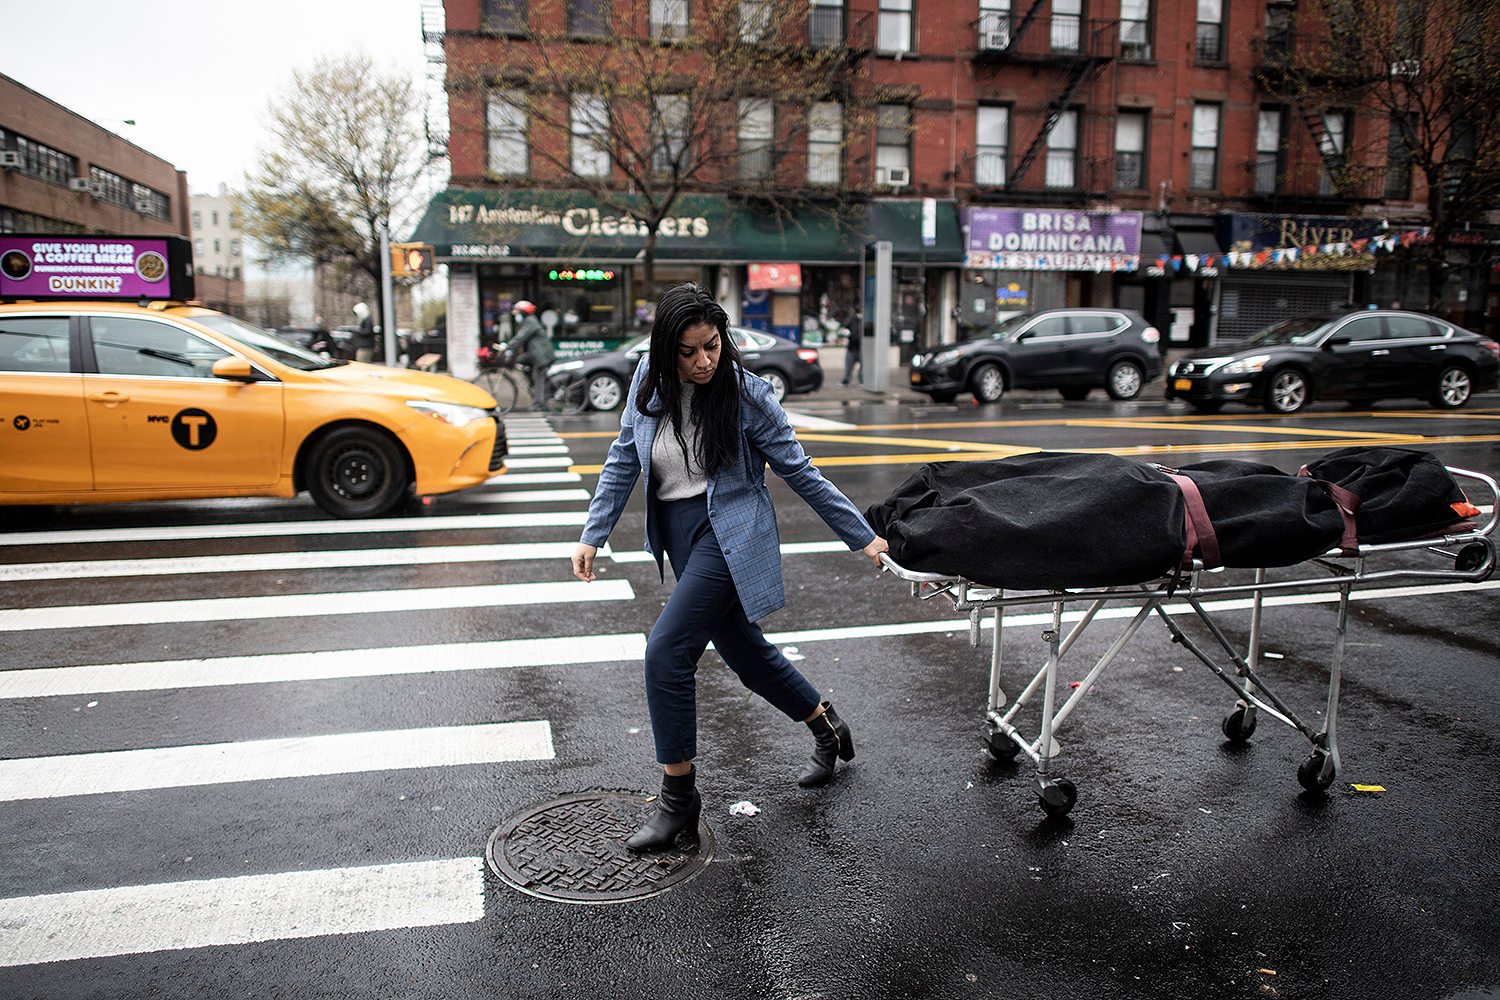 Alisha Narvaez, a manager at International Funeral & Cremation Services, transports a body to the funeral home in the Harlem neighborhood of New York City on April 24. JOHANNES EISELE/AFP via Getty Images